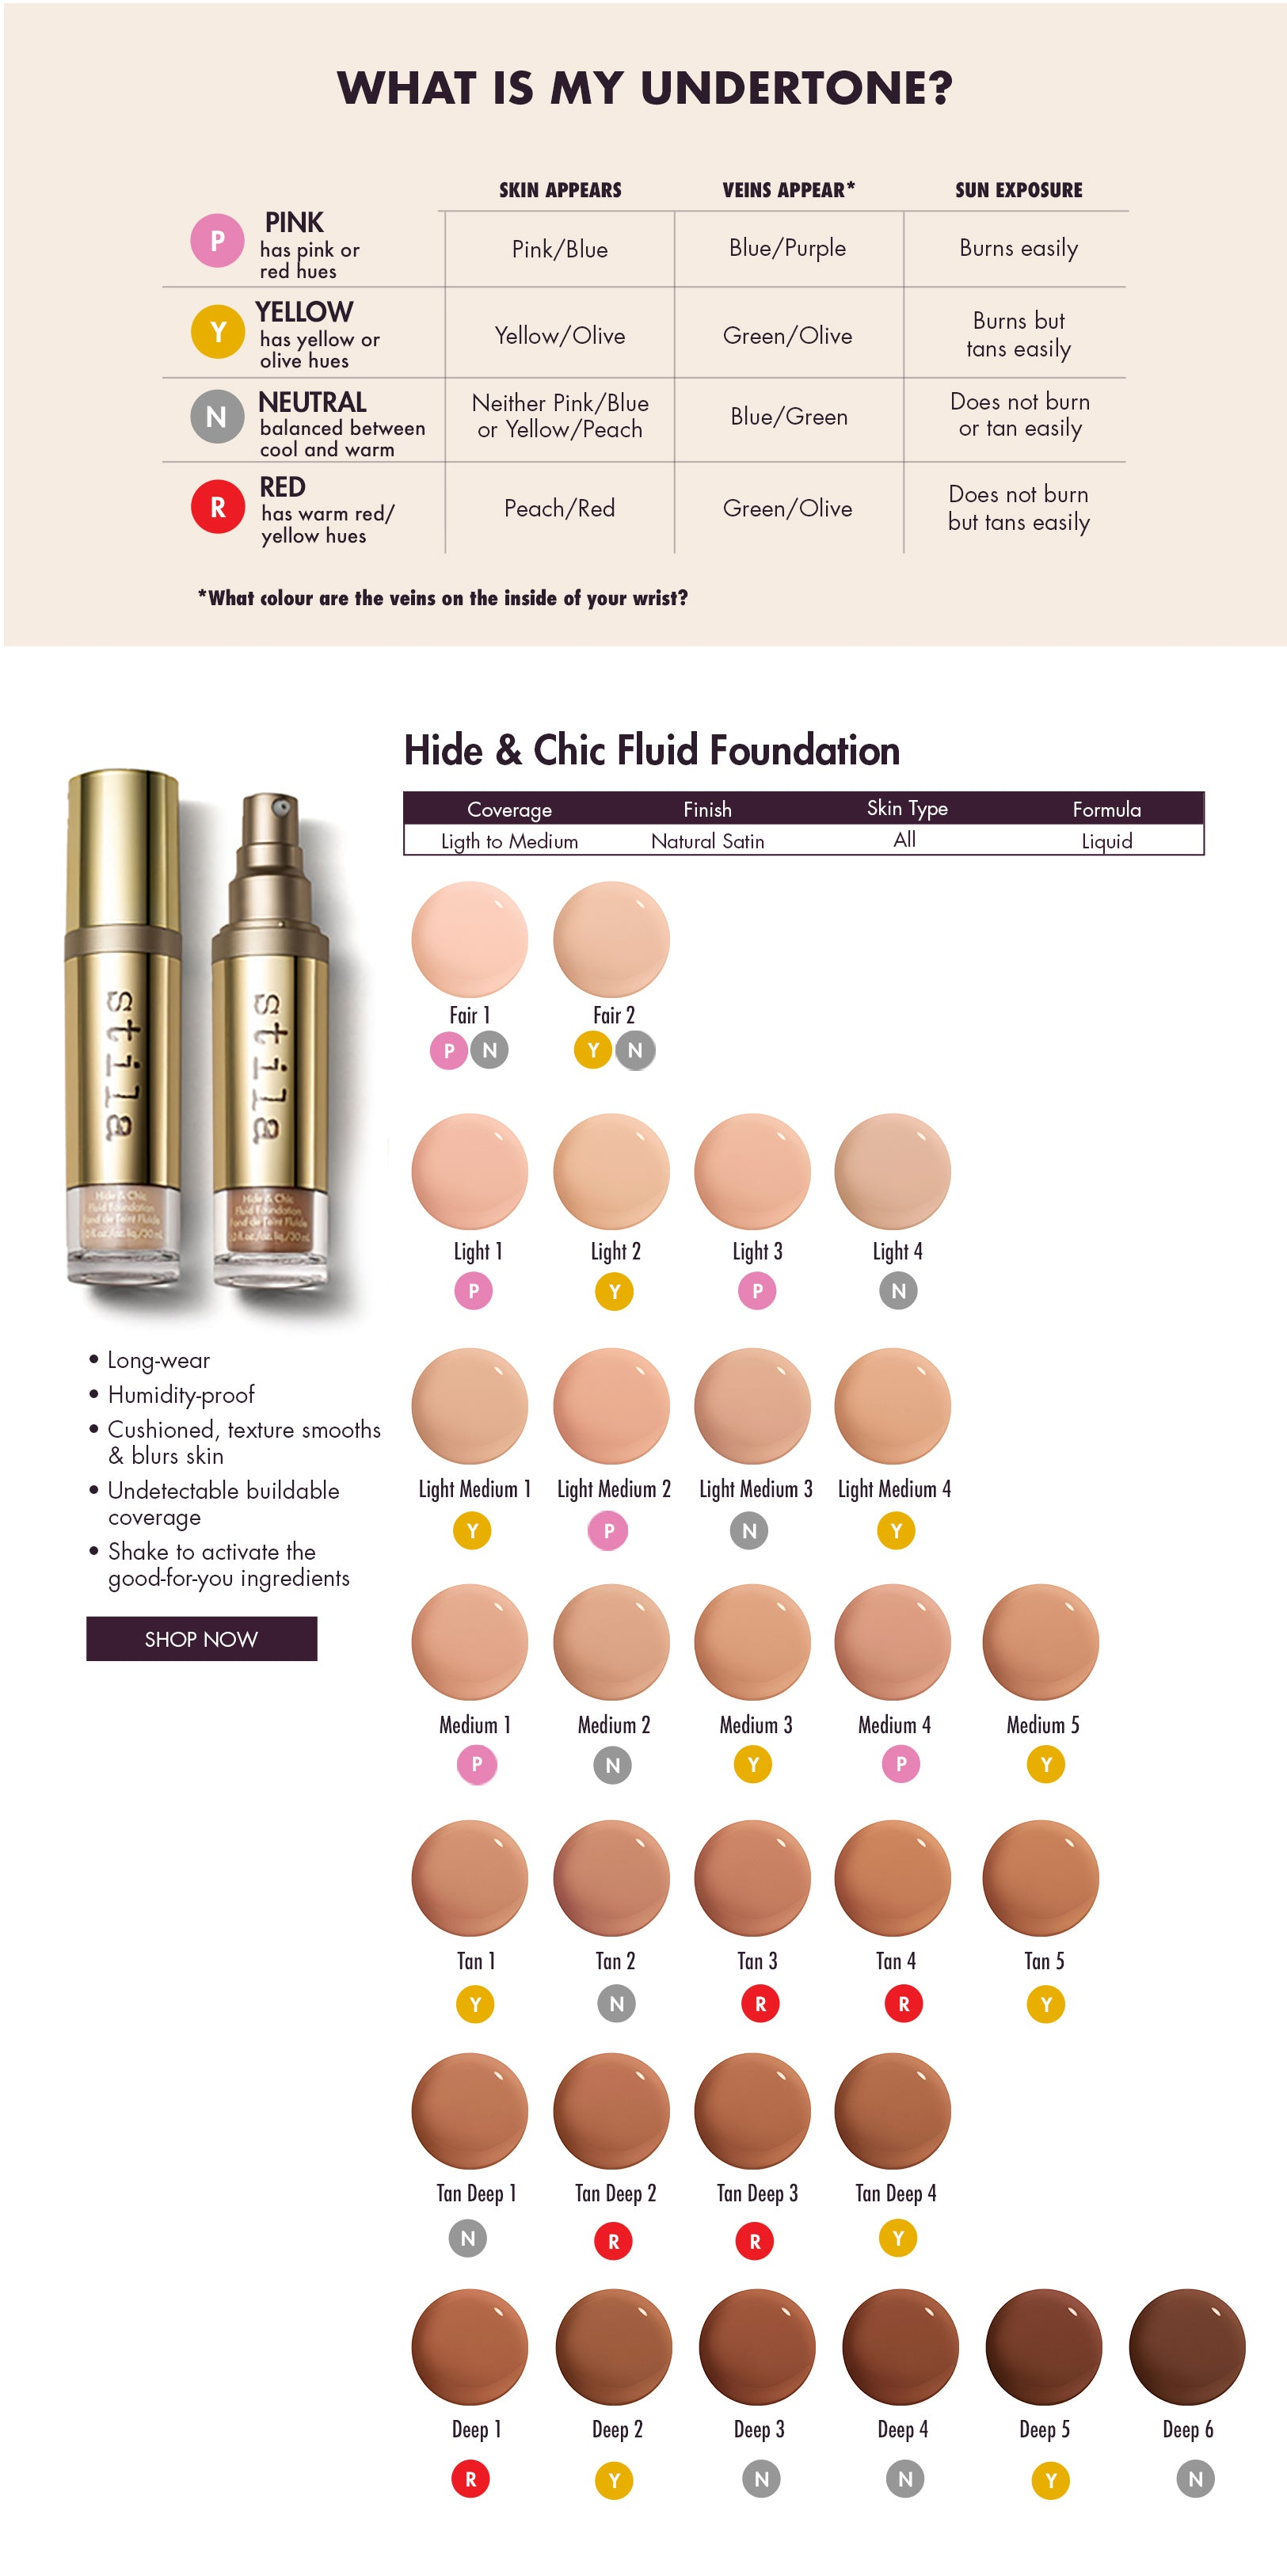 Stila Hide & Chic Fluid Foundation Shade Finder